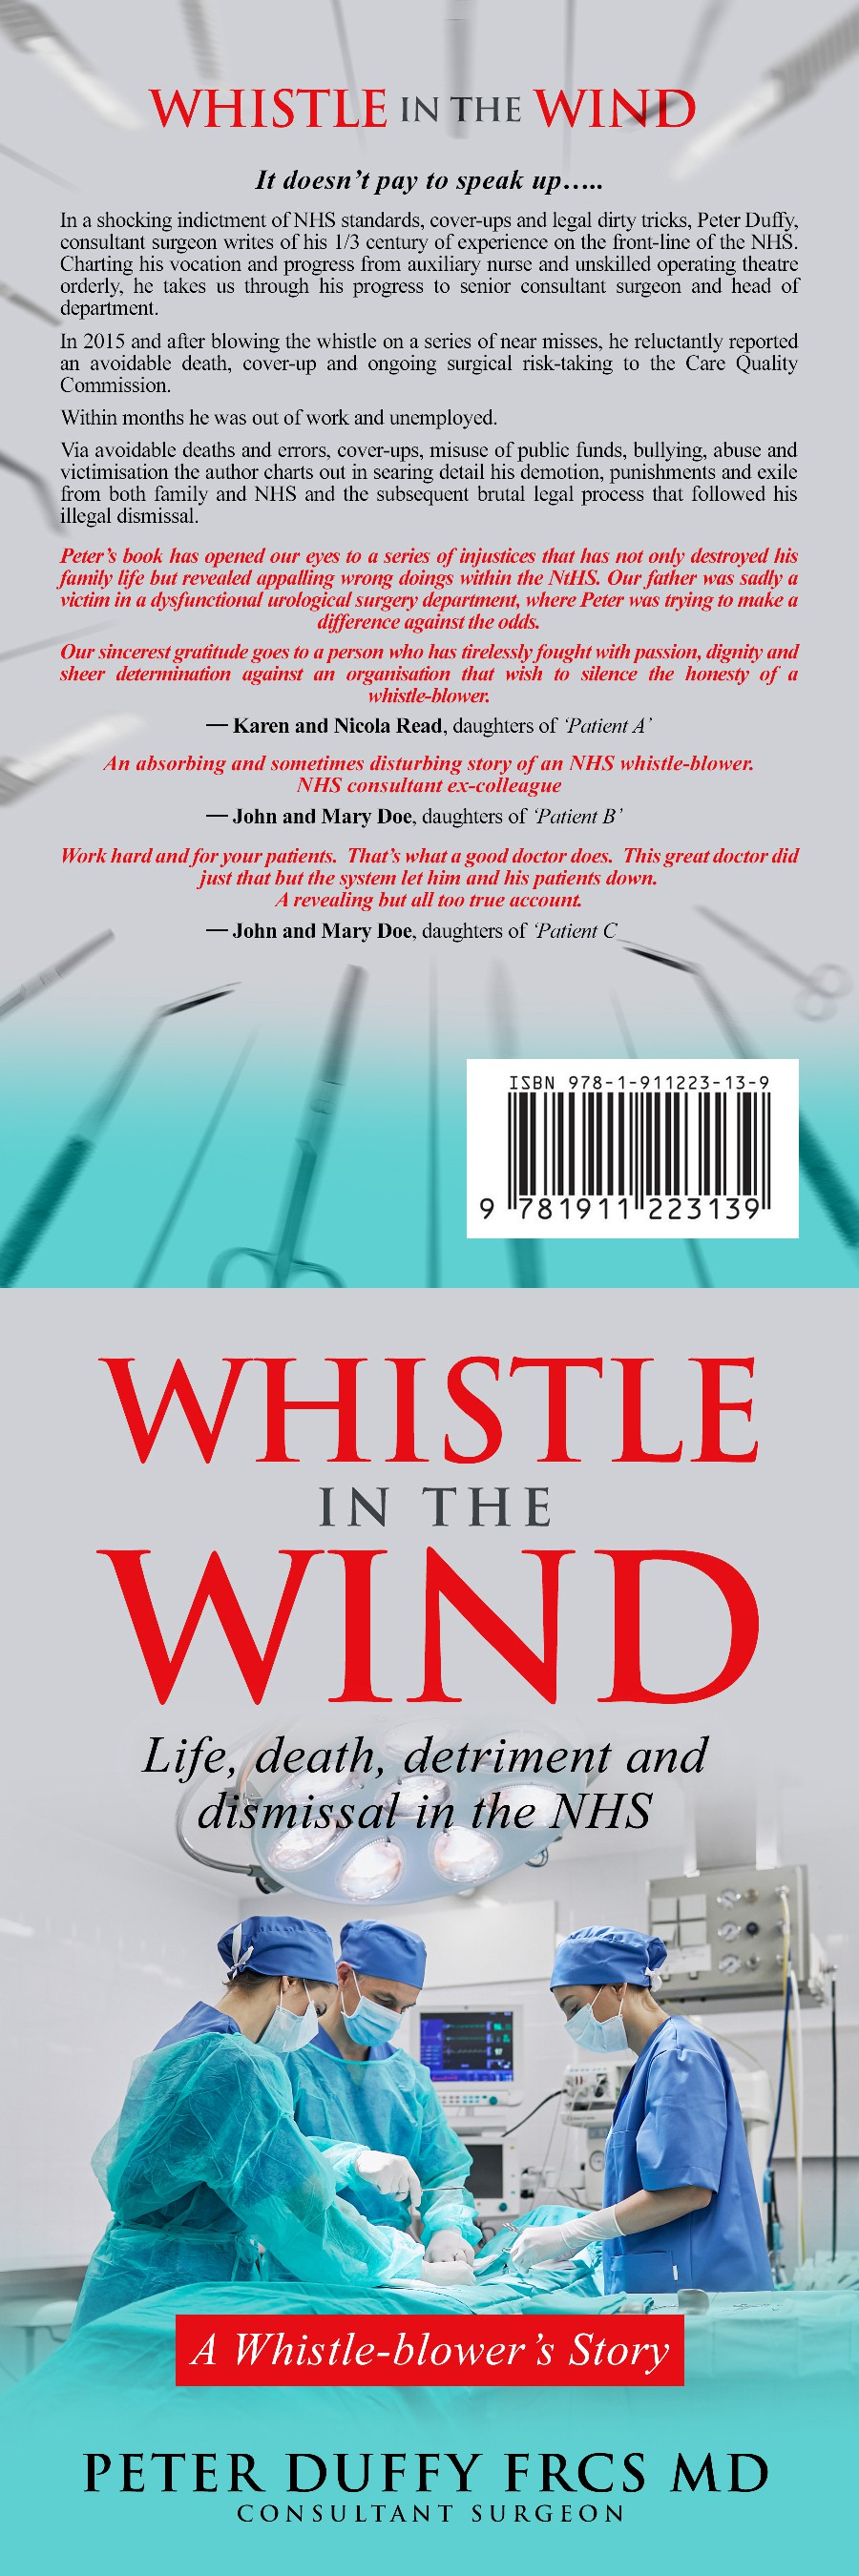 create a clean, professional ebook cover for a whistle-blowing surgeon